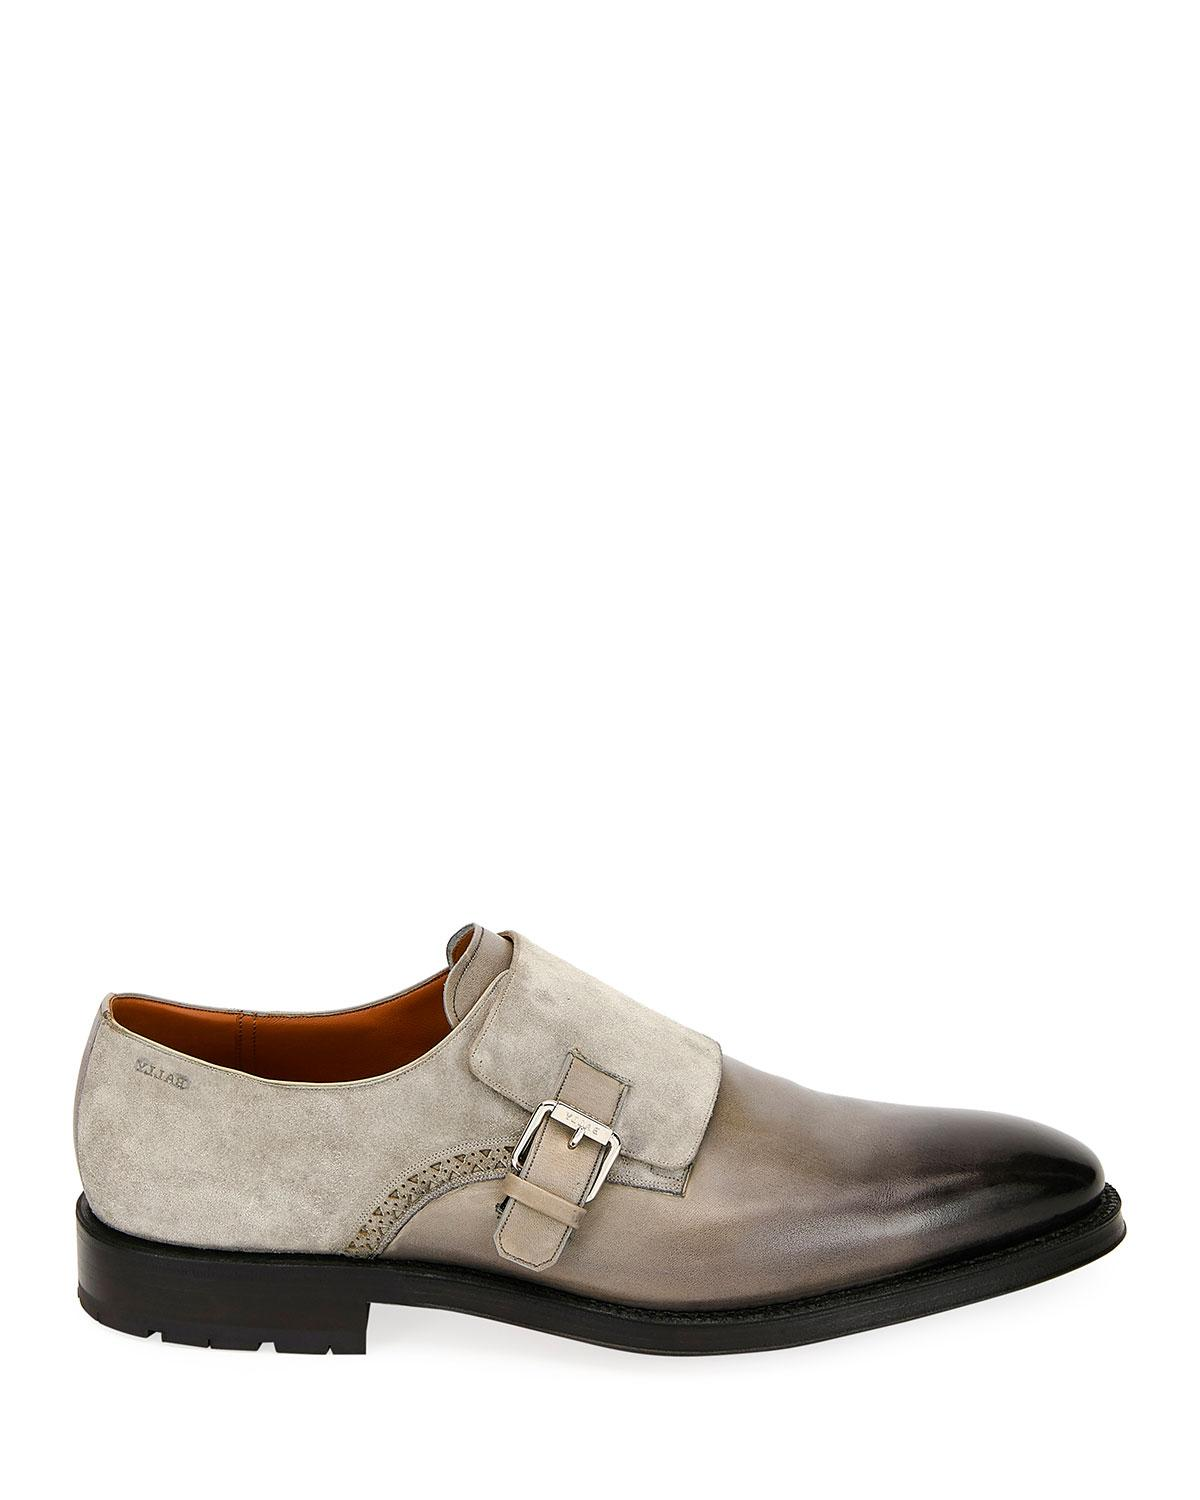 363fce1af0c Lyst - Bally Men s Balbin Leather Injected-sole Monk Strap Shoes in Gray  for Men